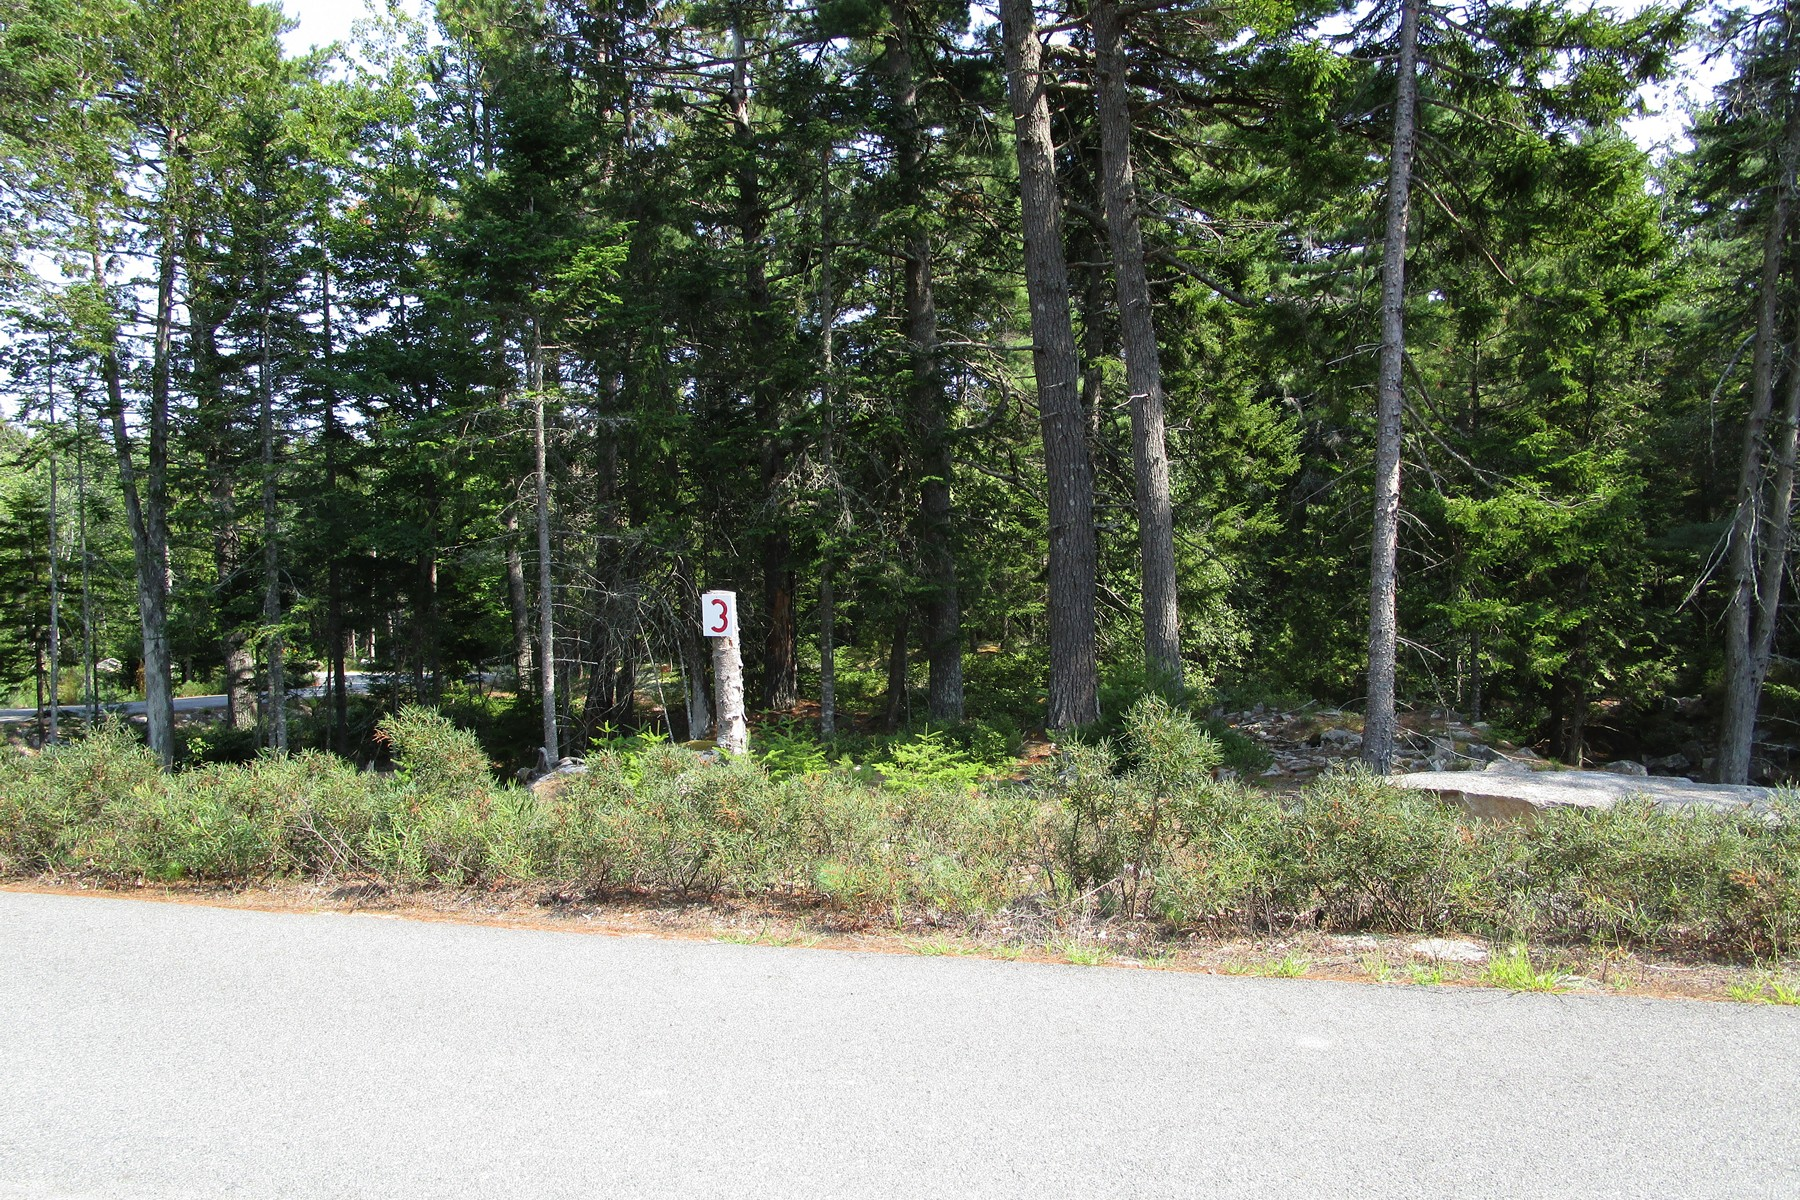 Land for Sale at Echo Woods Road Lot 3 Lot 3 Echo Woods Road, Mount Desert, Maine, 04660 United States